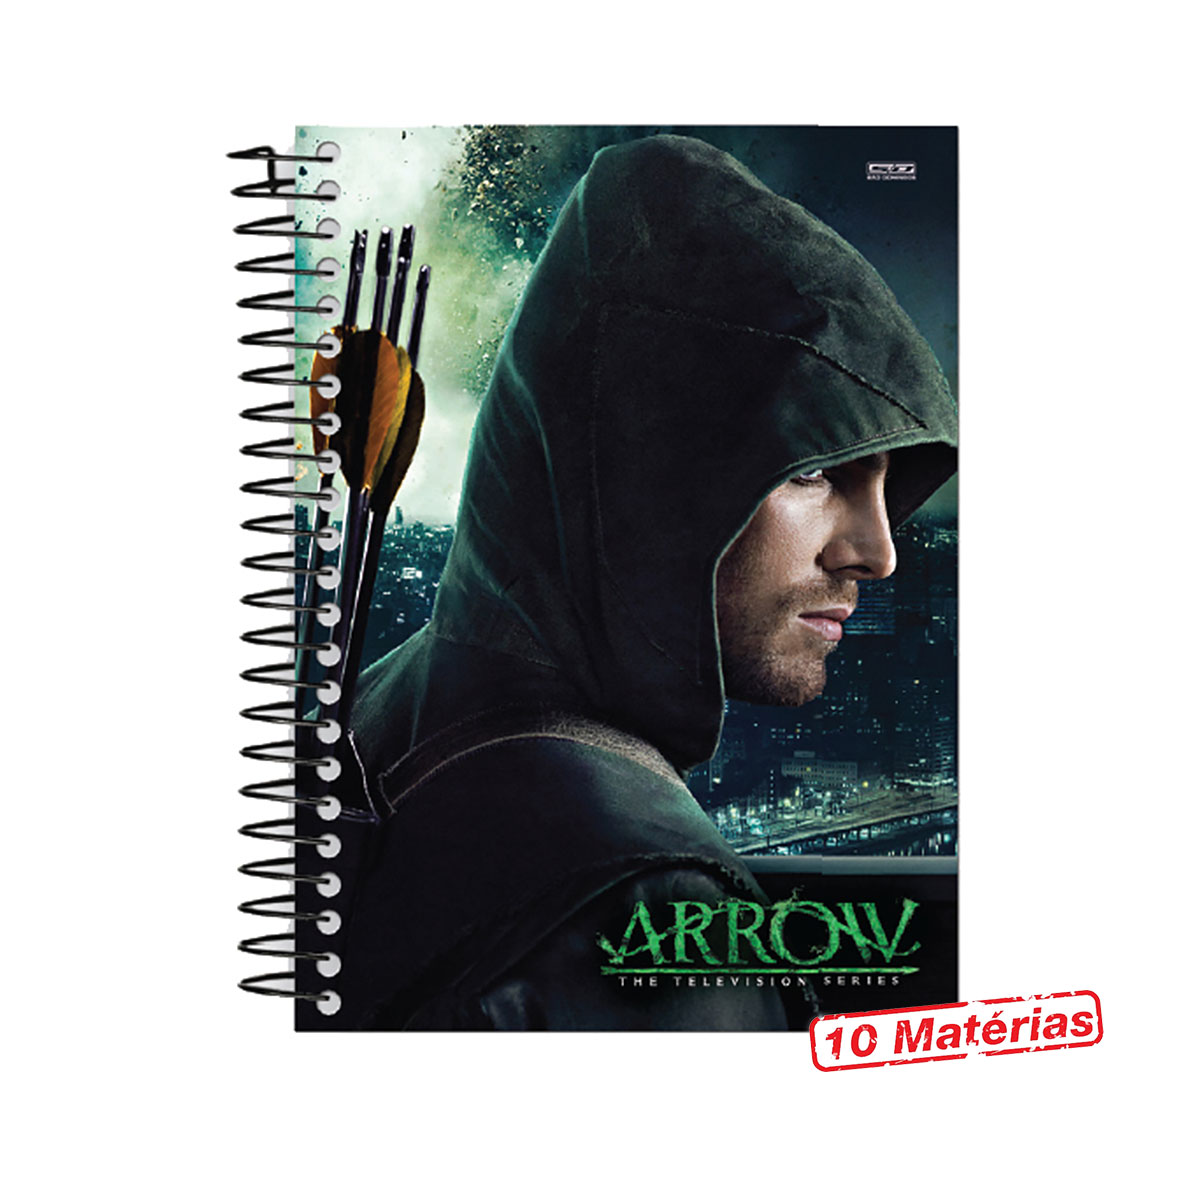 Caderno Arrow Profile 10 Matérias